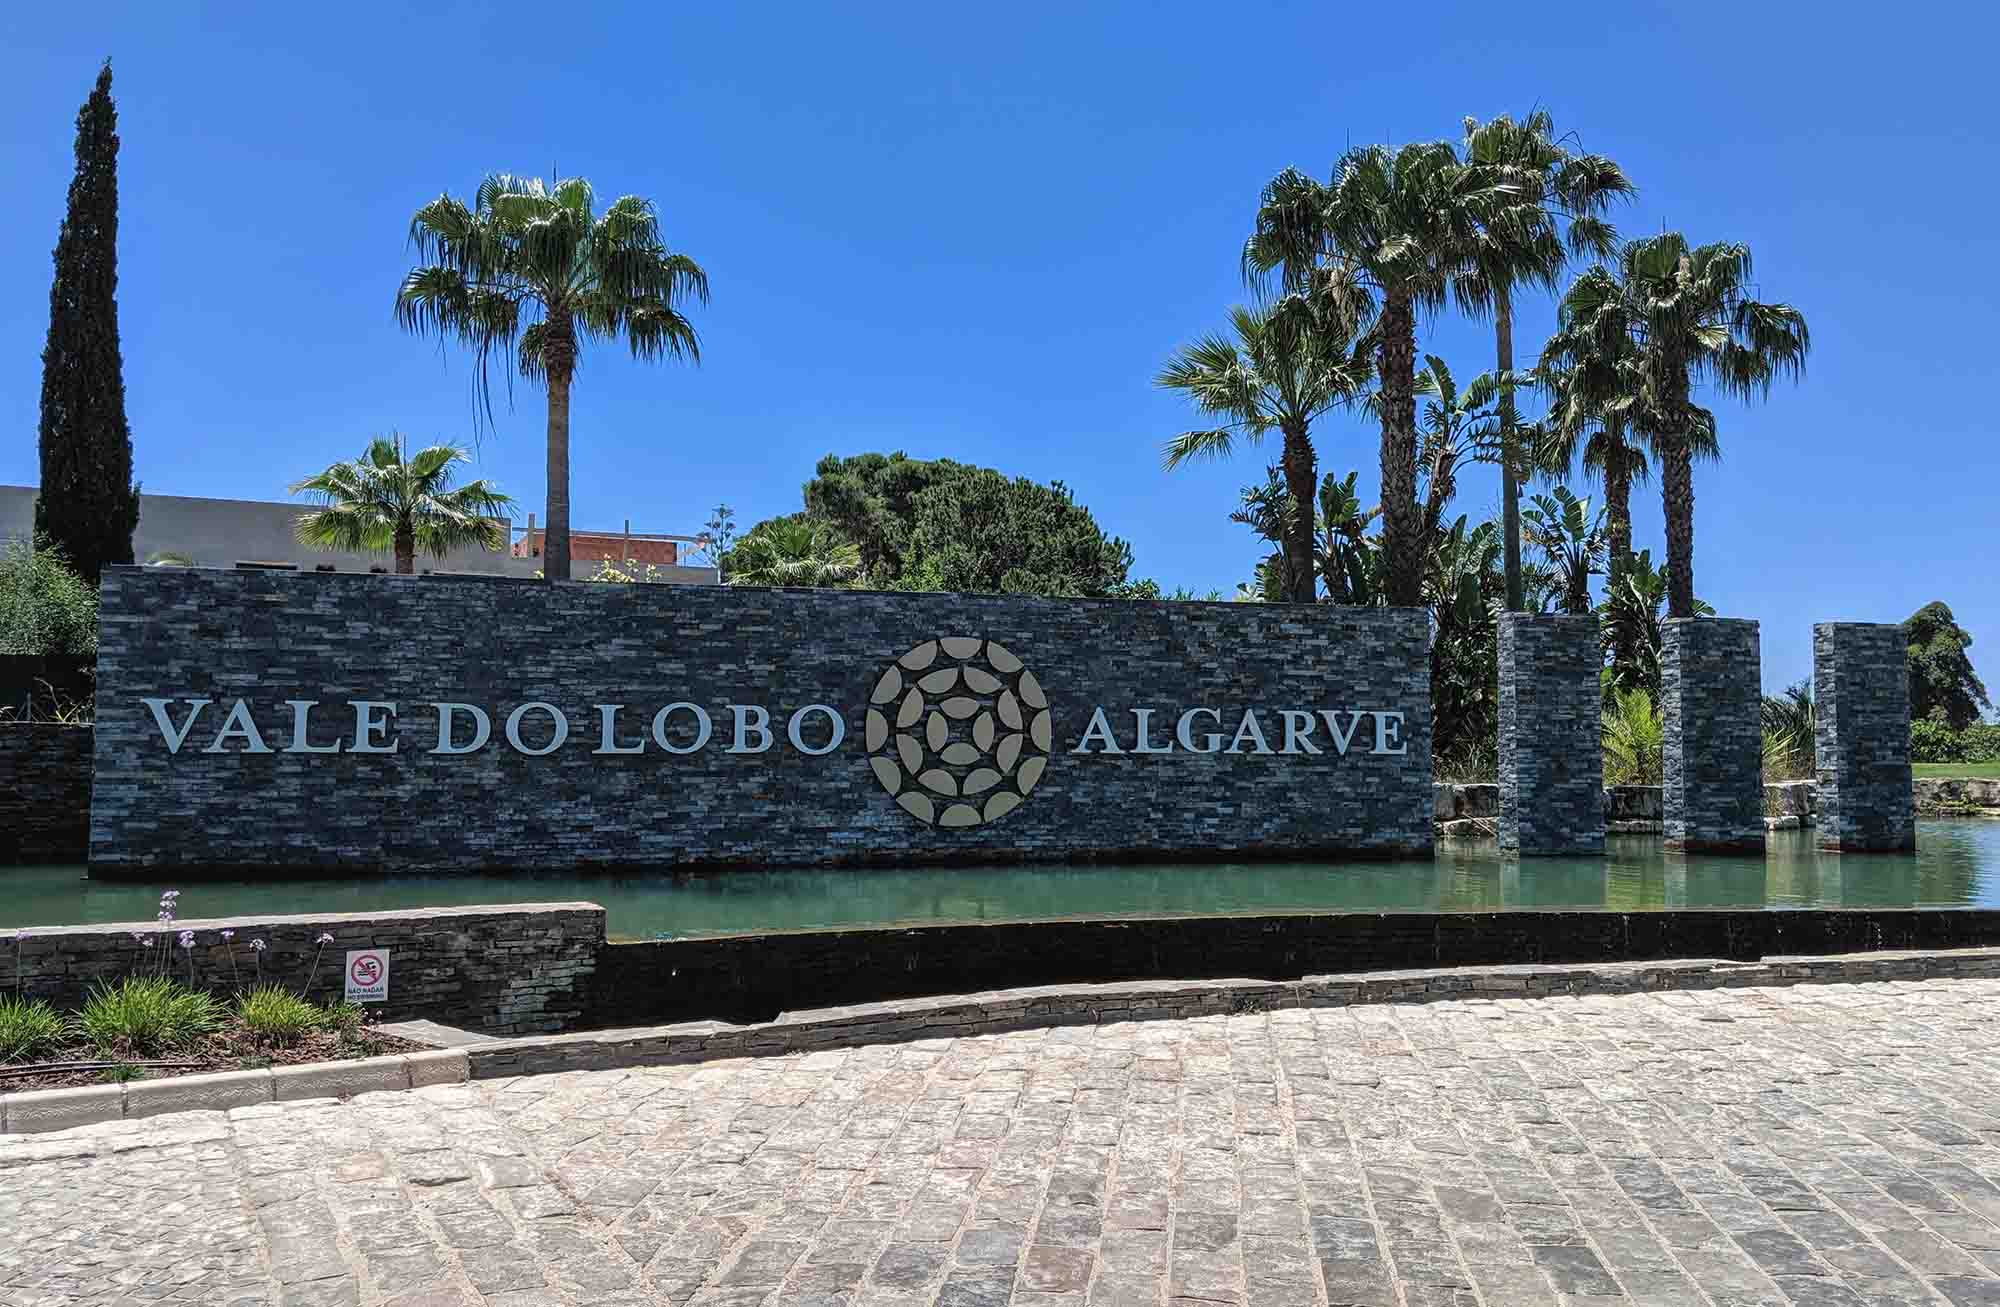 Vale do Lobo roundabout sign